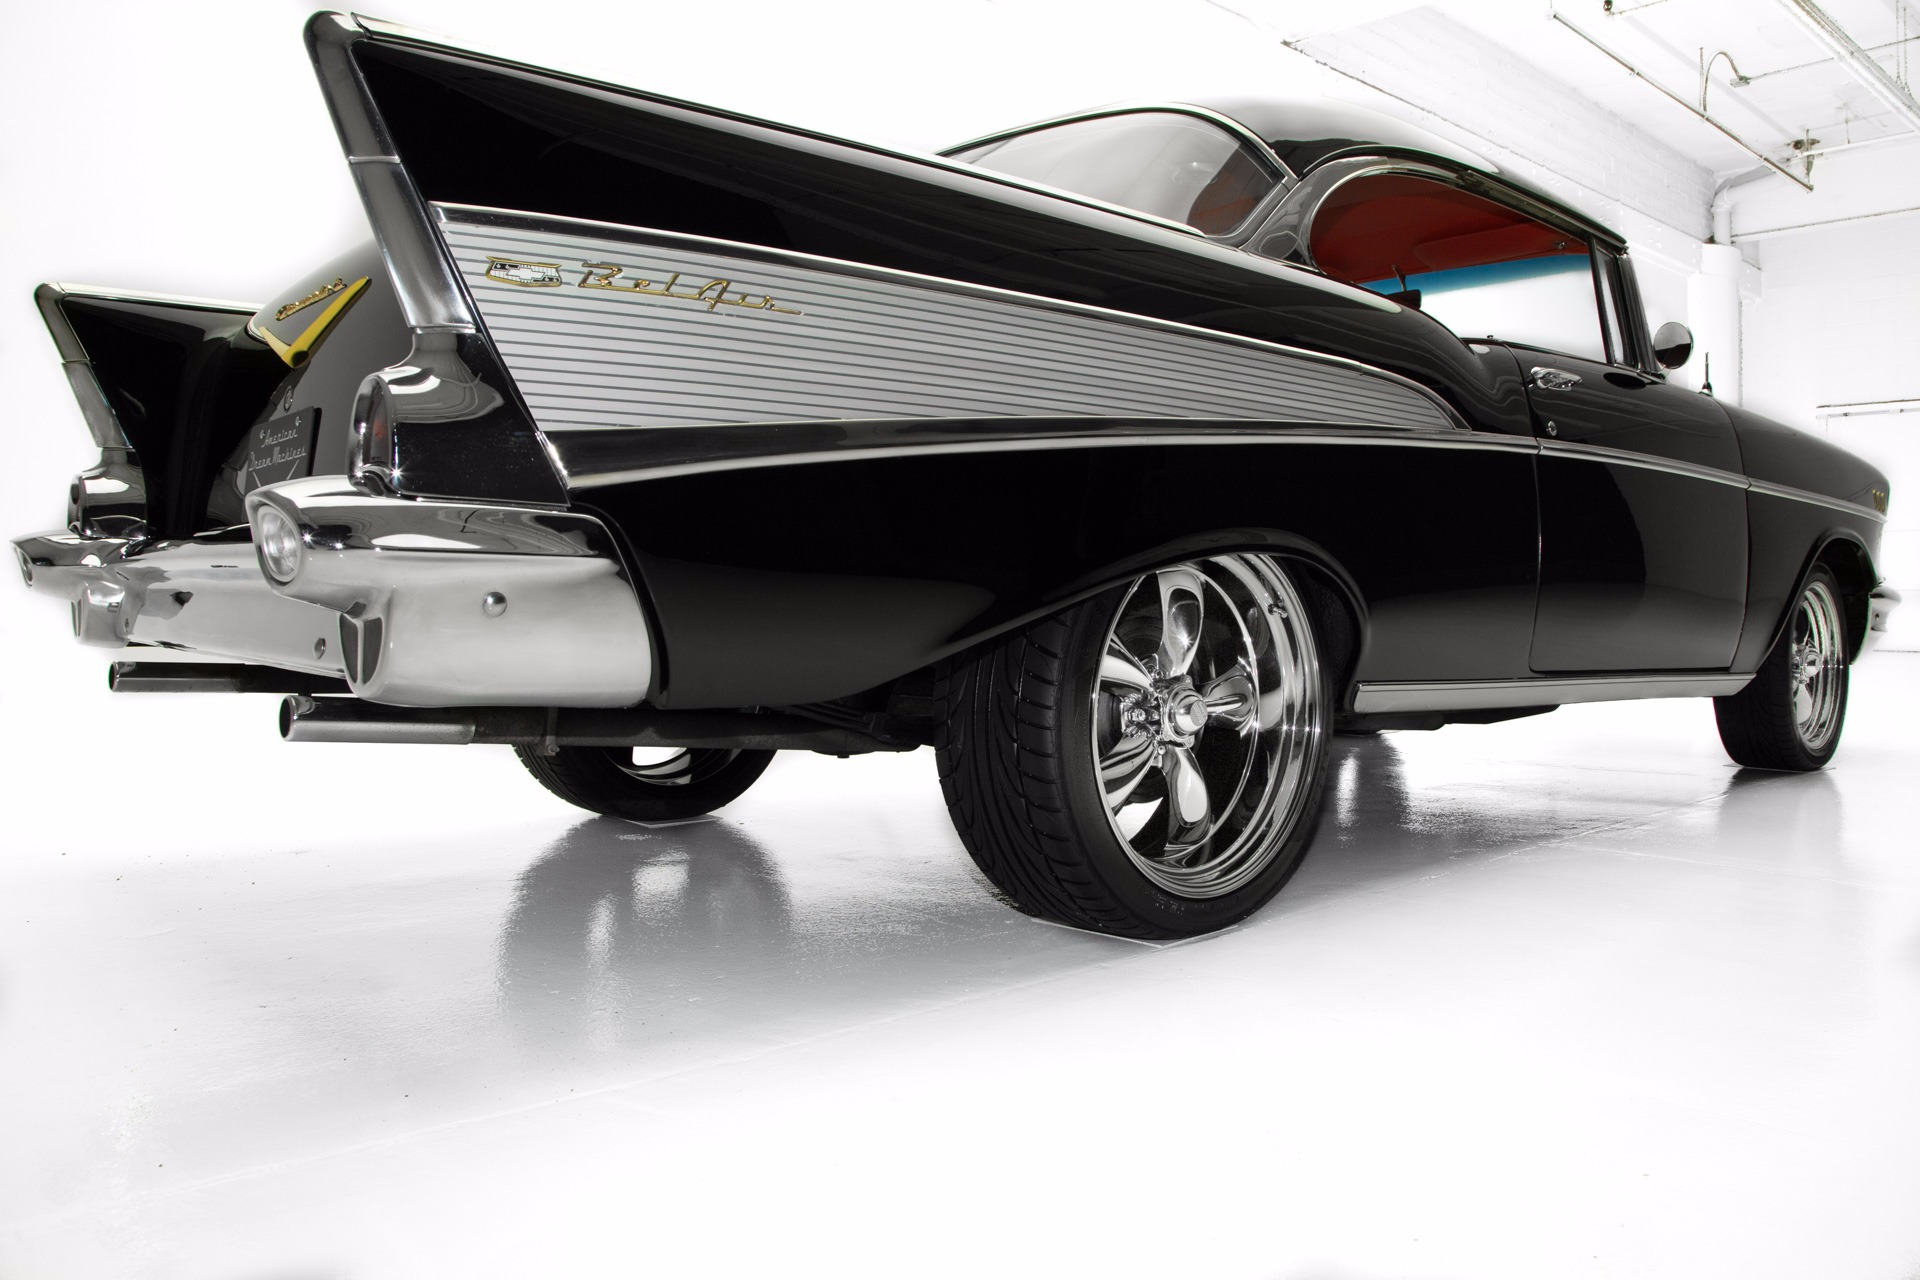 1957 Chevrolet Bel Air Black 283 V8 Automatic AC - American Dream ...